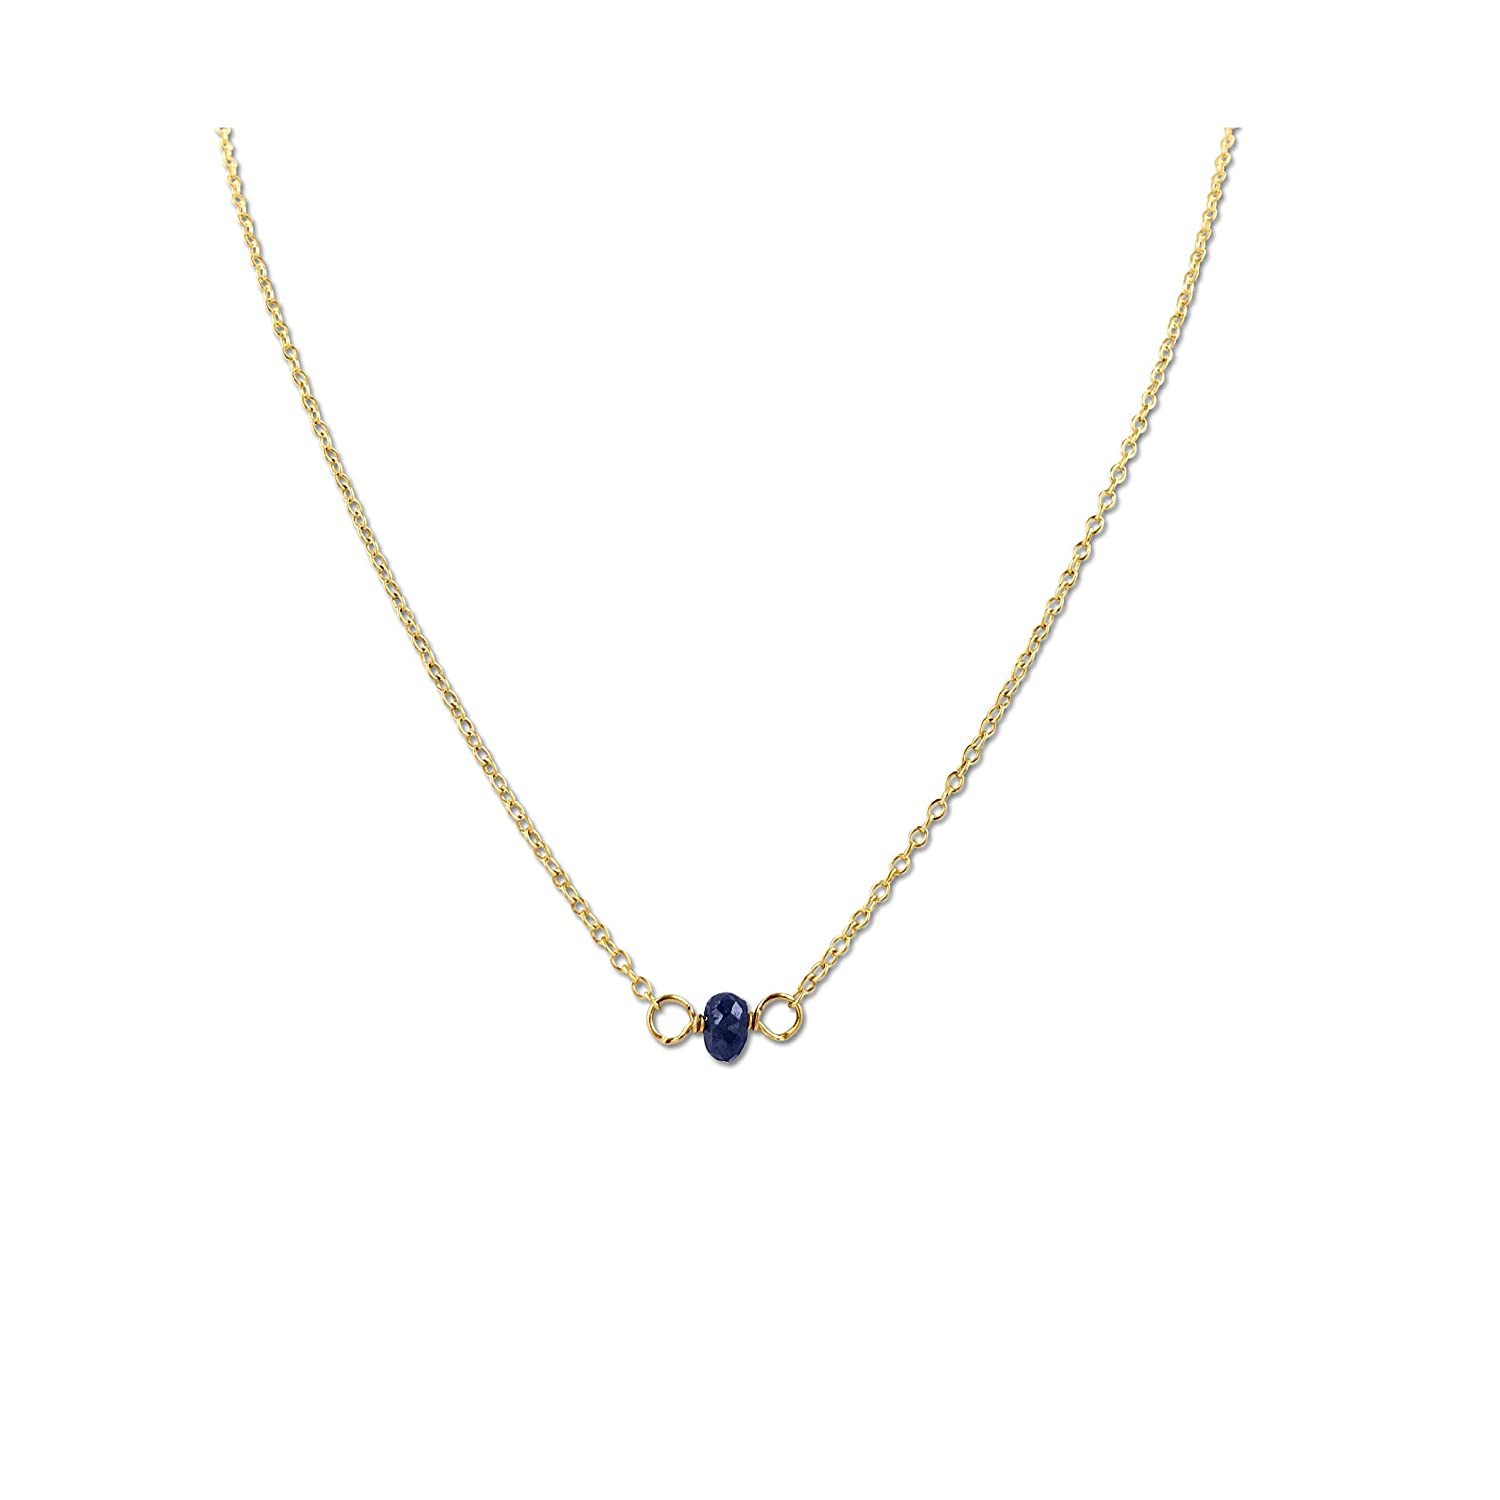 Gold Birthstone Choker Necklace 16 Sale SALE% Animer and price revision OFF Fill - S Inches Yellow